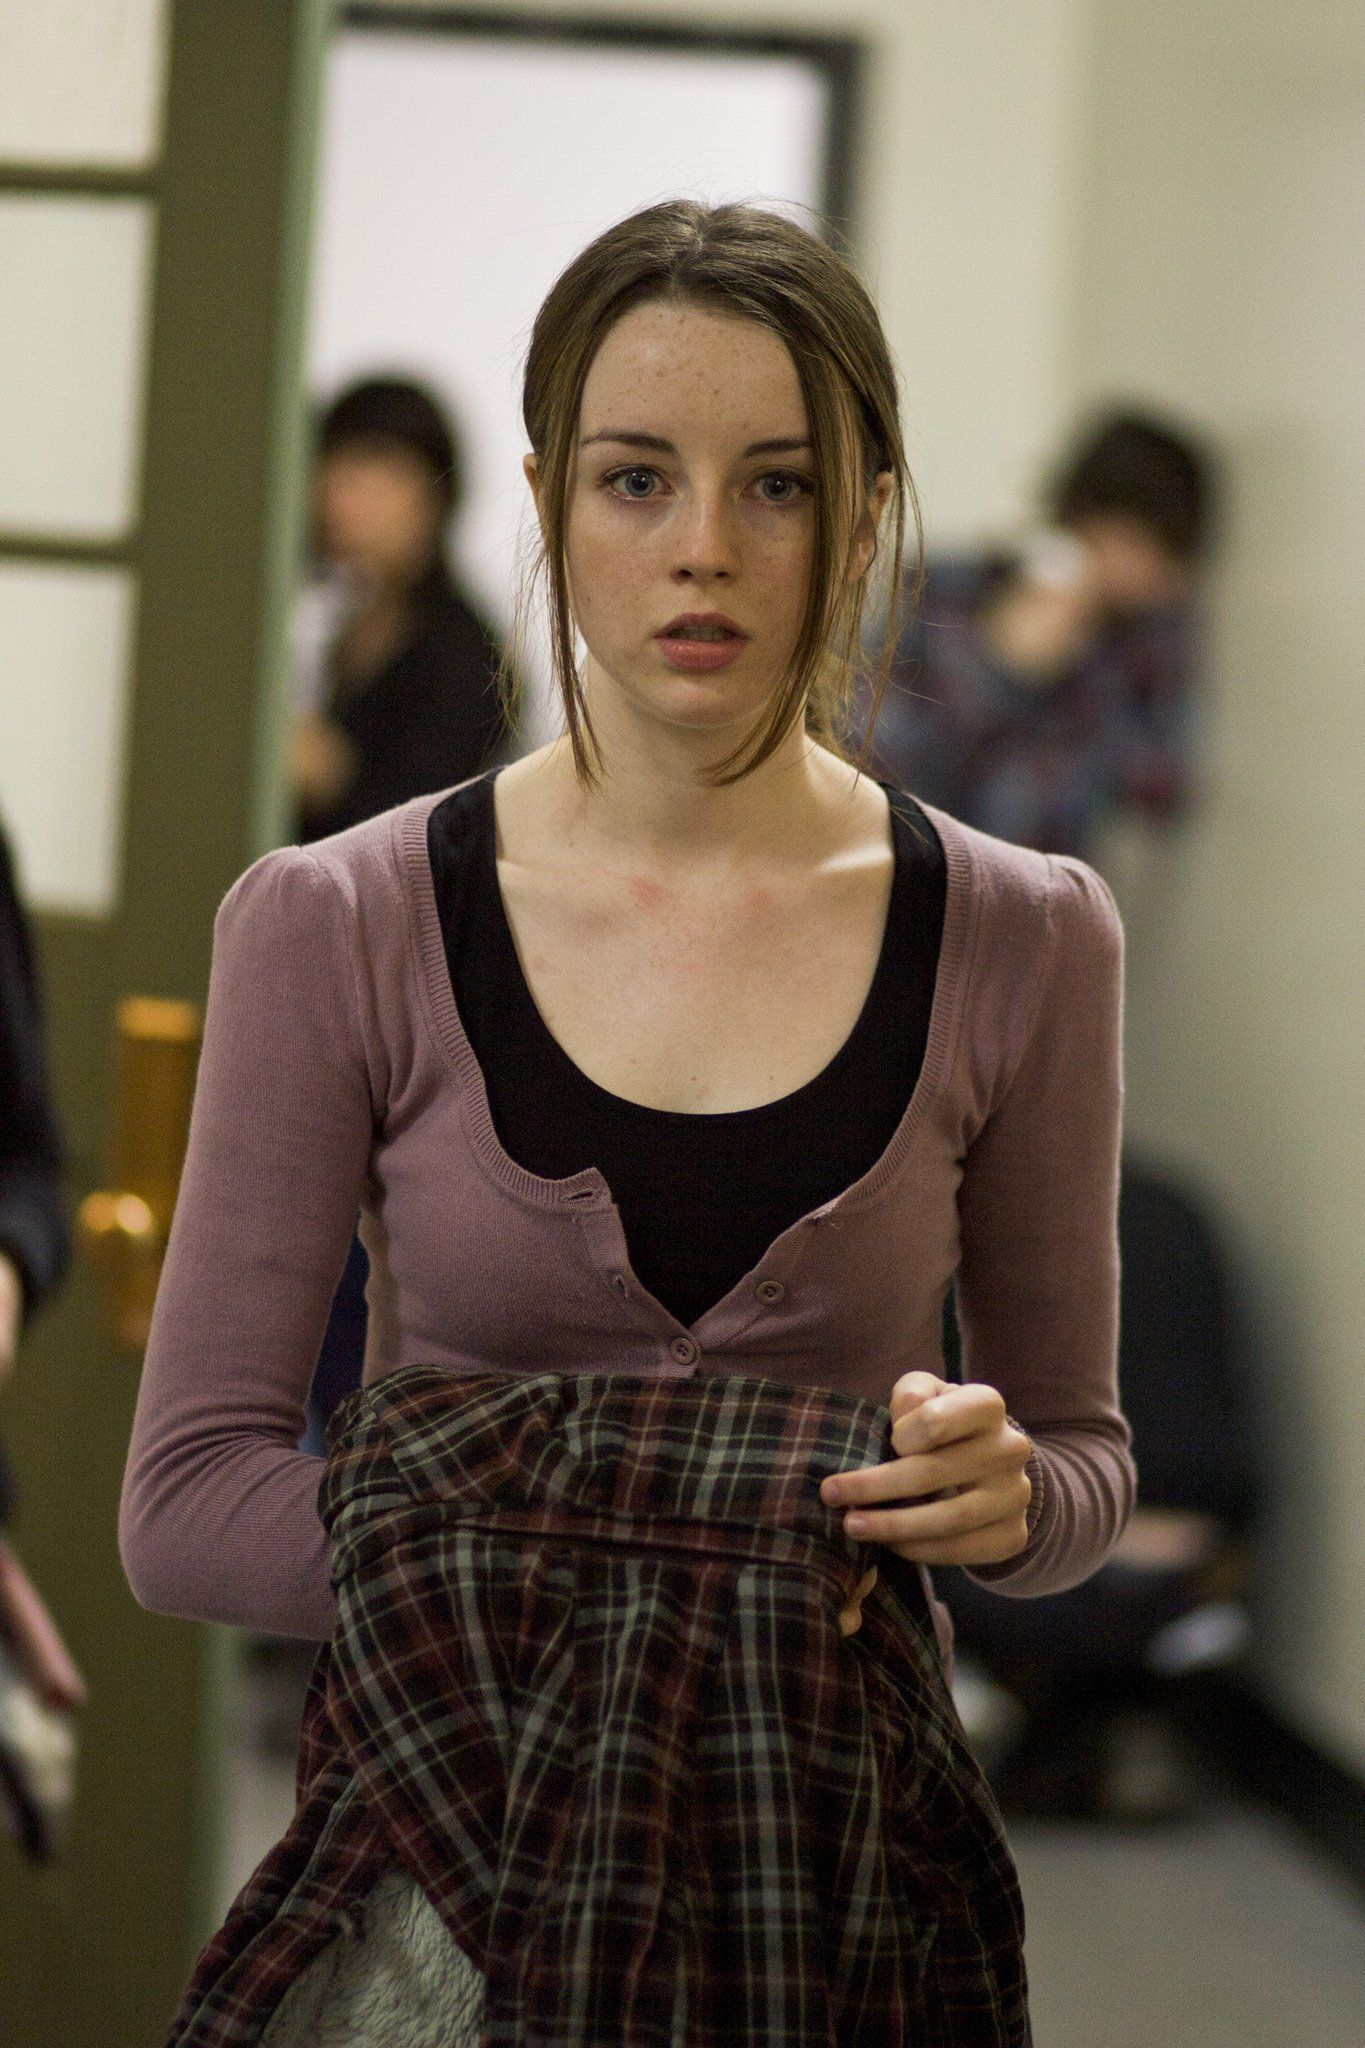 kacey rohl dating websites Welcome to kacey rohl daily, your number one source for all things kacey rohl  anything you need can be found in the tags tab kacey's social media:.